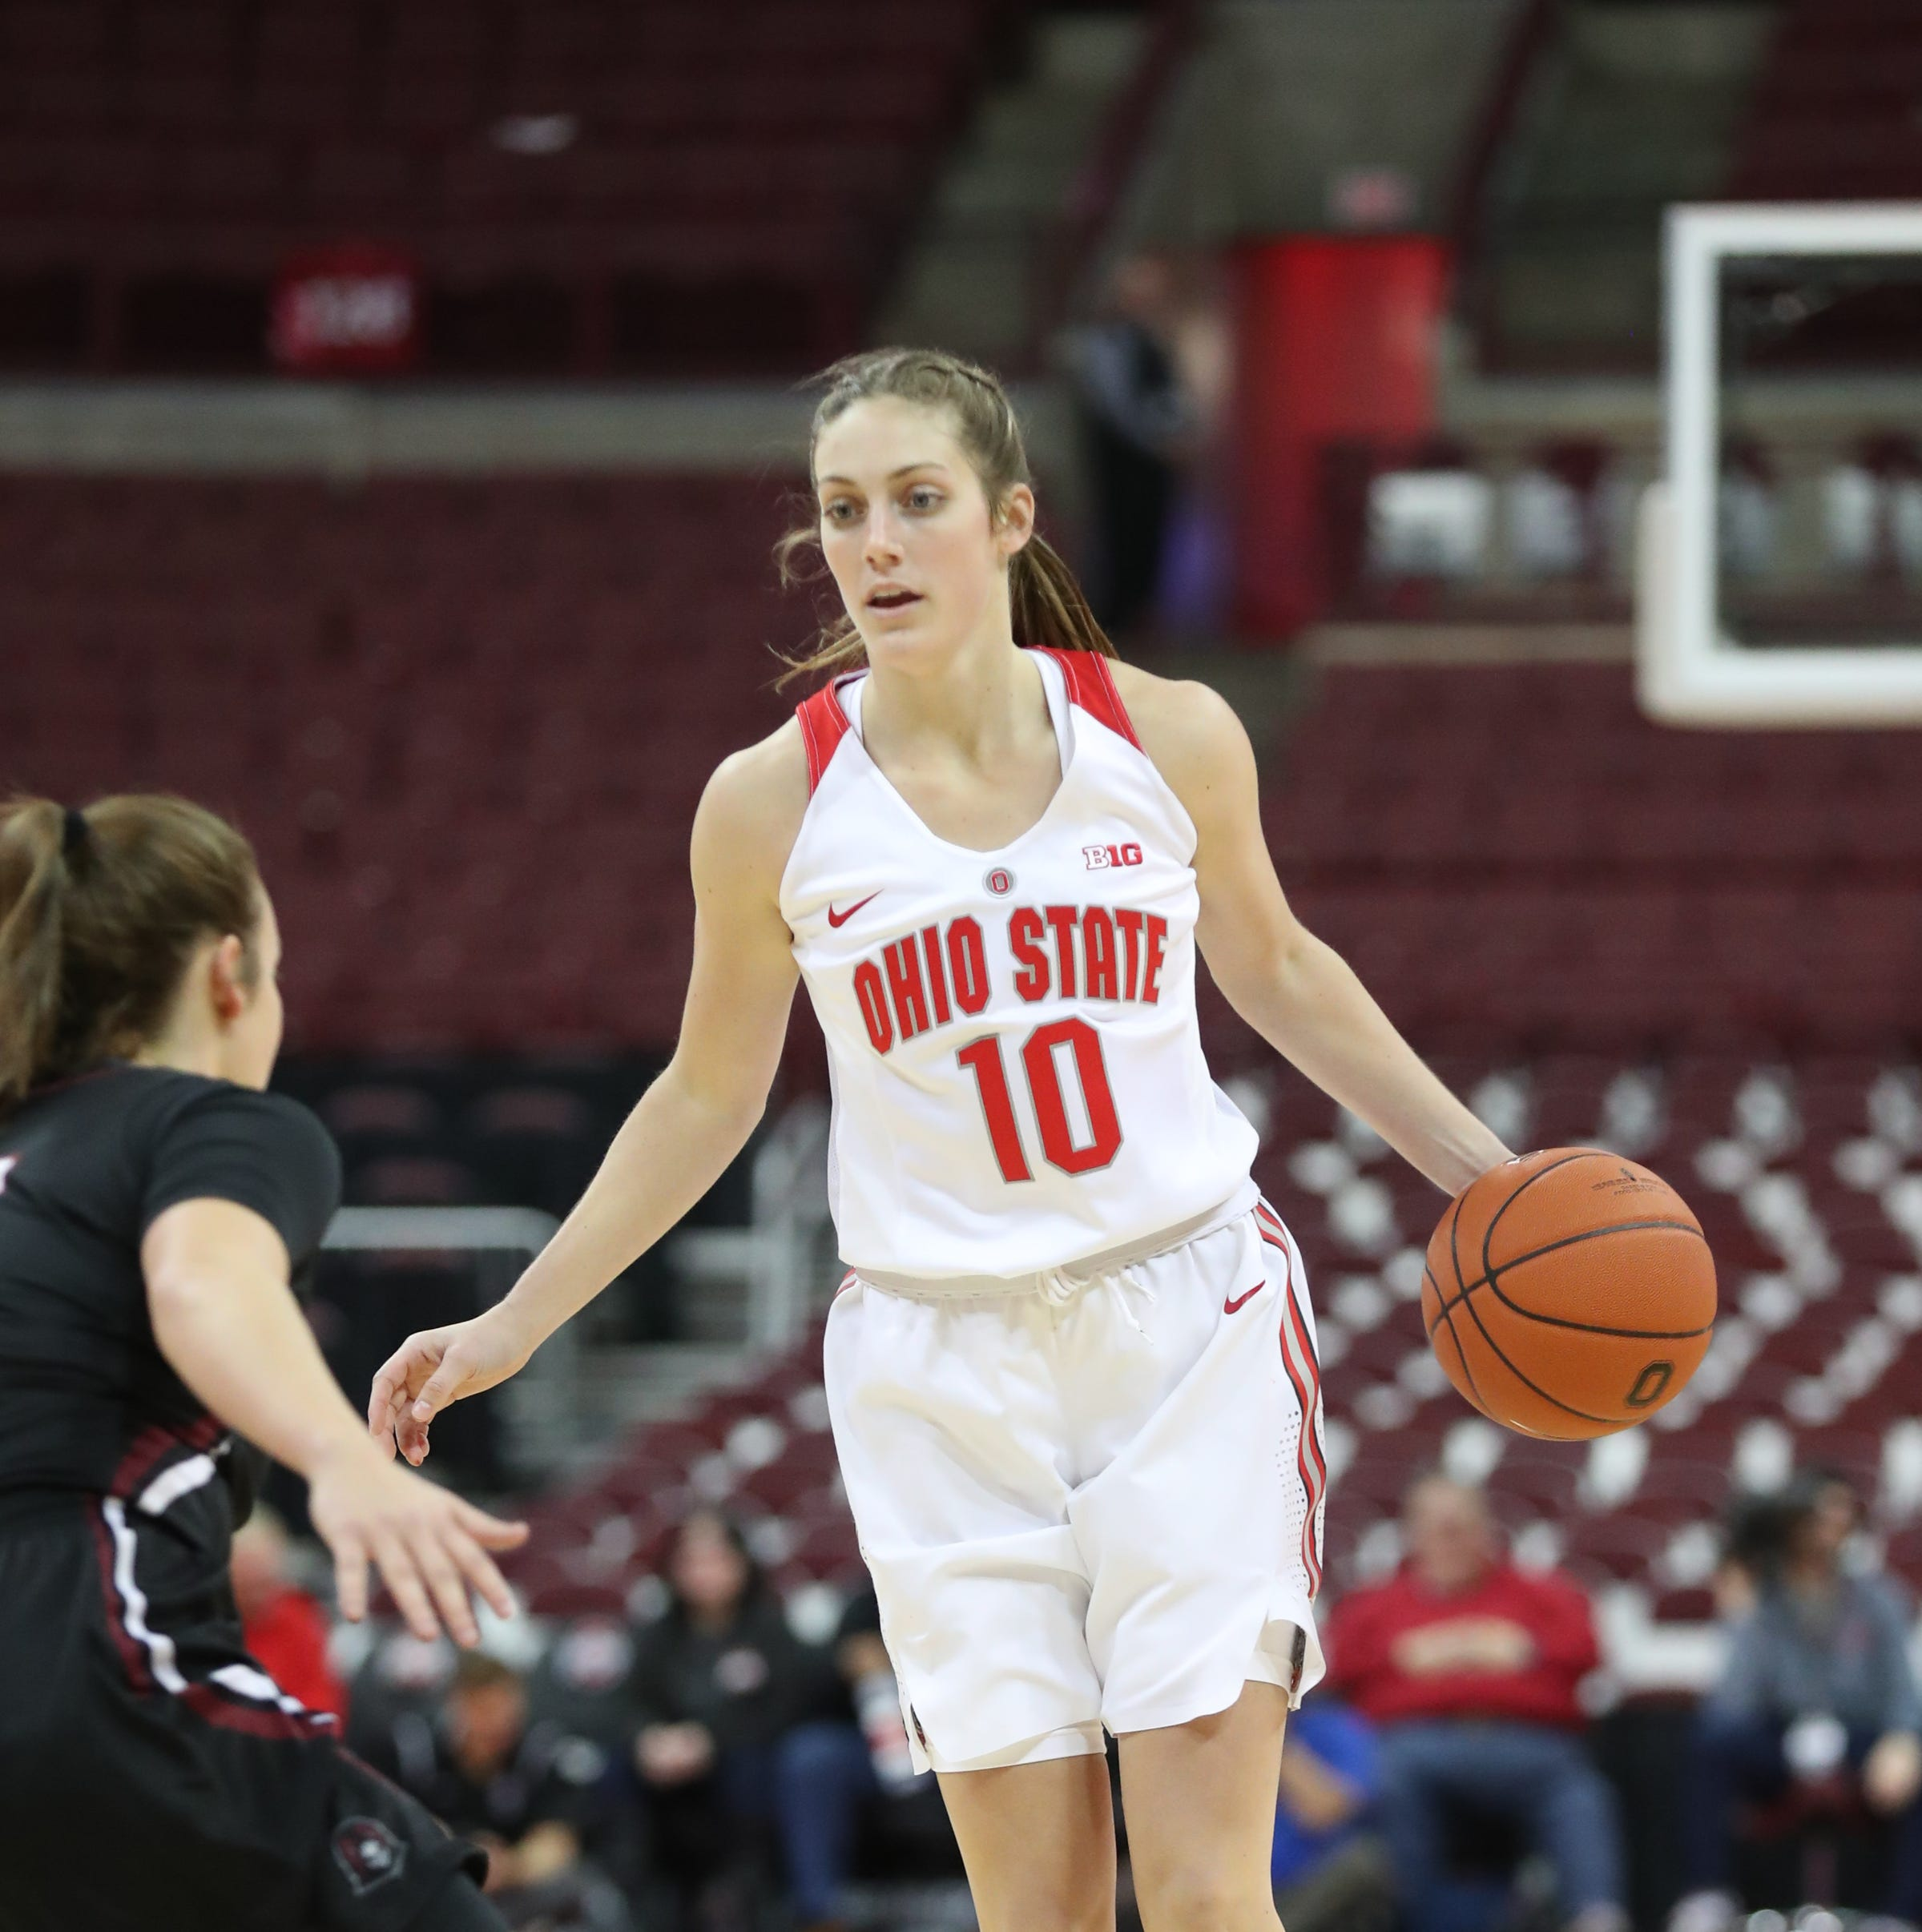 Bellevue's Santoro a major addition for Buckeyes